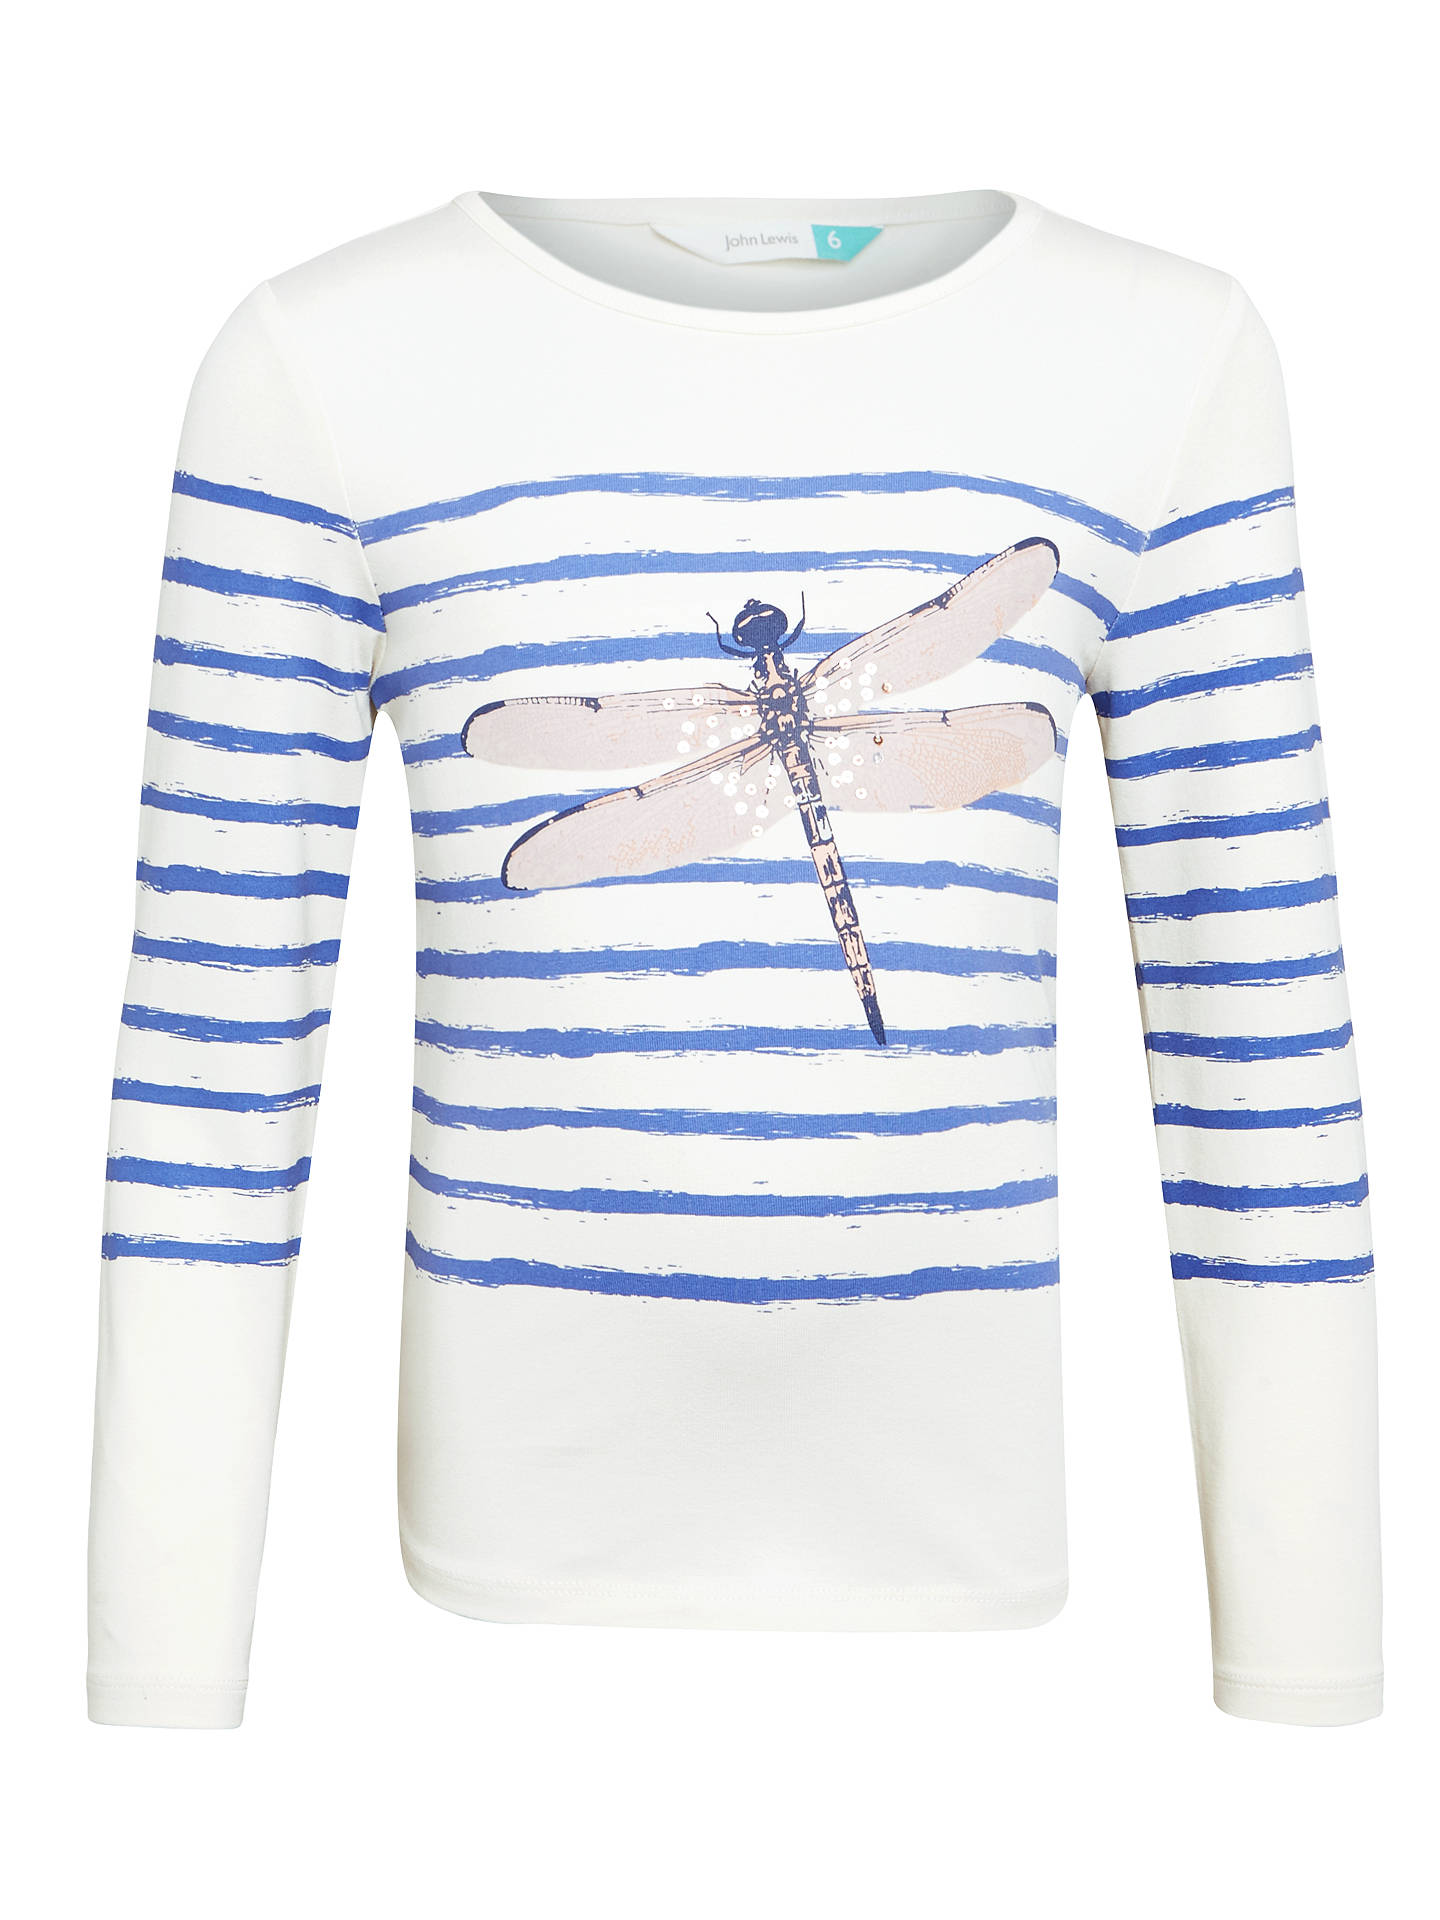 98cfbc5aeb9 Buy John Lewis Girls  Sparkly Dragonfly T-Shirt